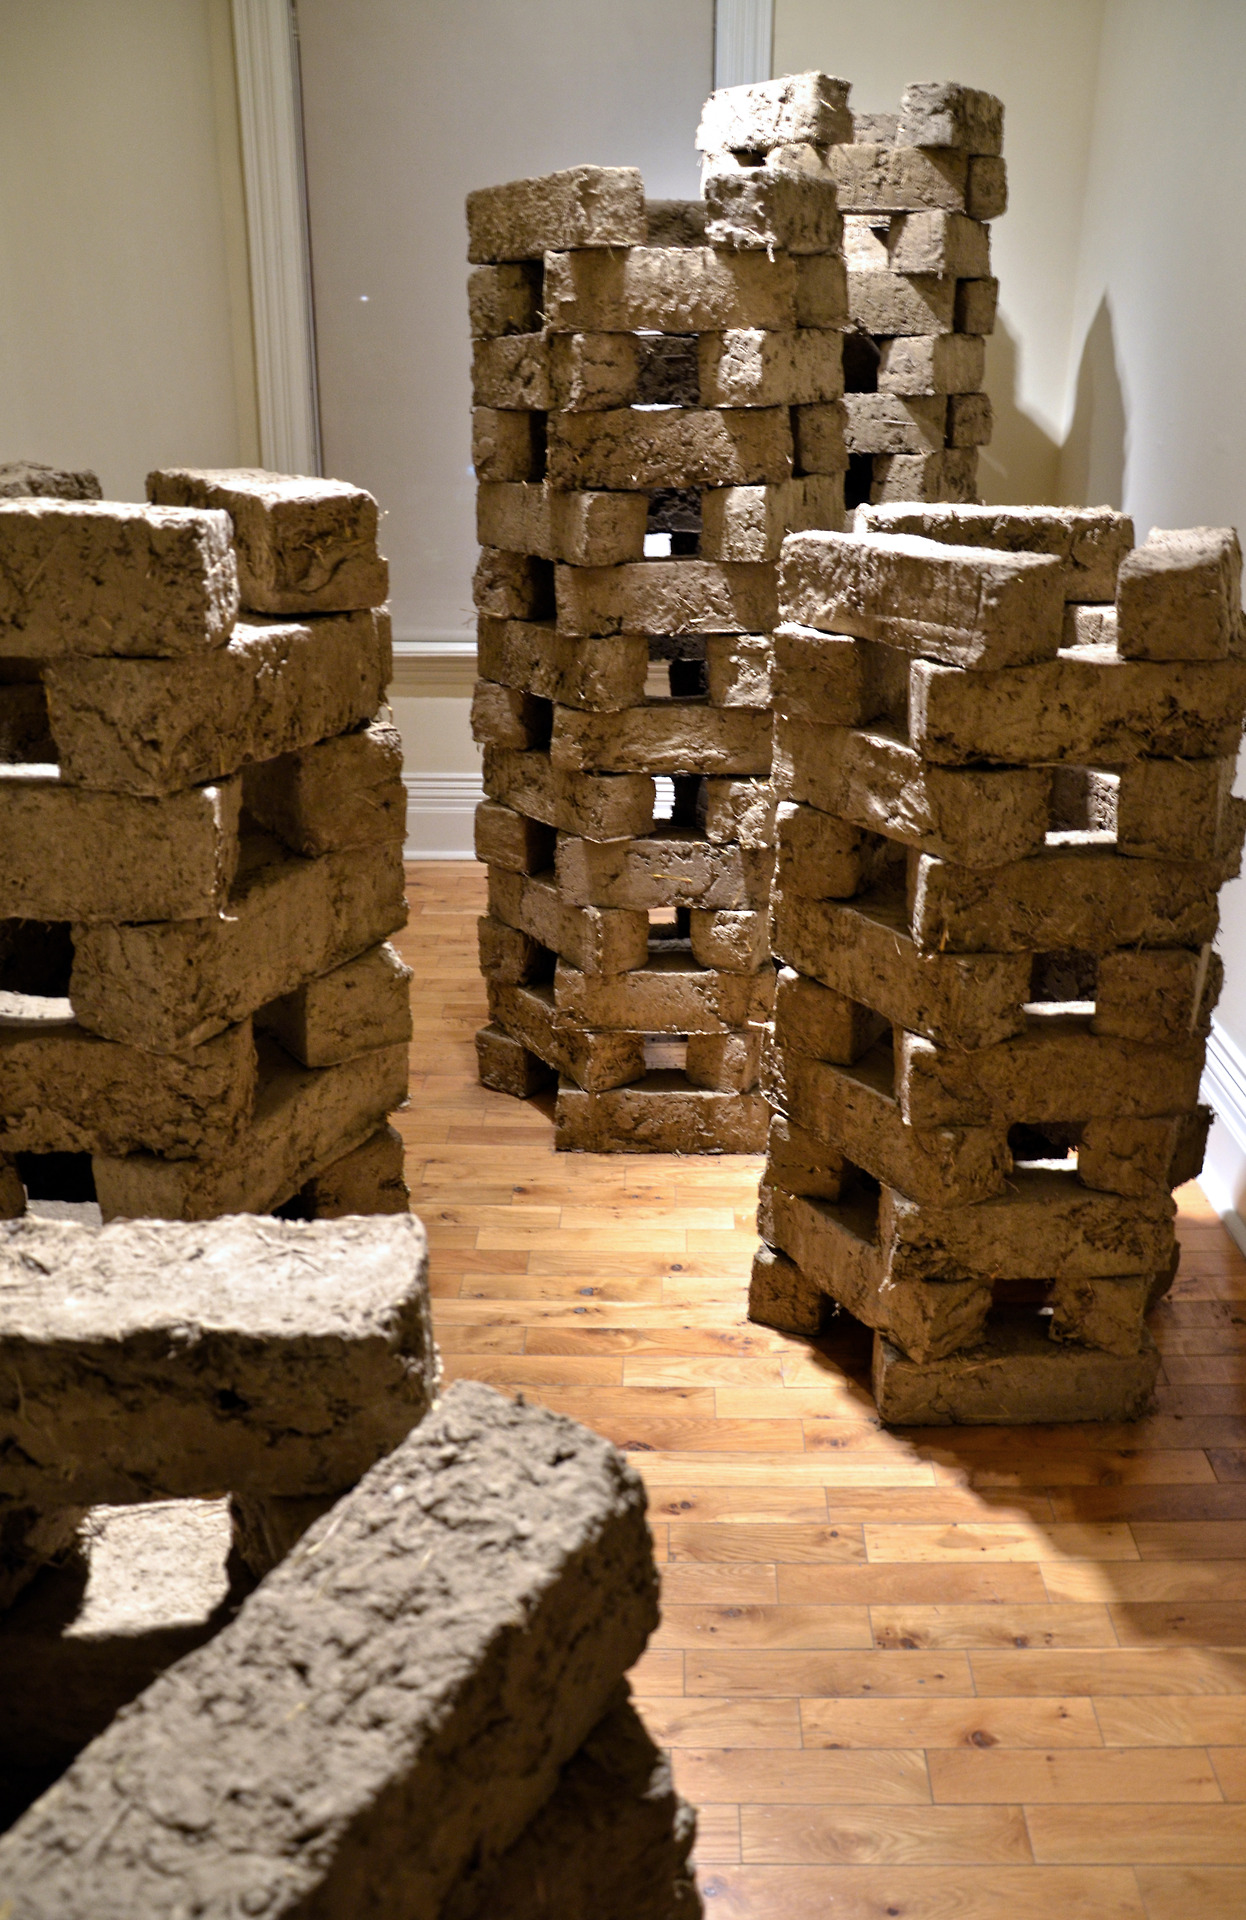 dirt. - matthew caudle + robert cram   grow op. gladstone gallery. 2013.   dirt explores constructions of the landscape or exterior as being wild, rebellious and expressive, with its counterpart, the indoors, as being obedient, organized and authoritarian.   the installation examines our accelerating ambition to bring order to complex natural systems. hand made bricks are constructed into increasingly more complex nests, a prelusive symbol of manipulation and control in the environment.